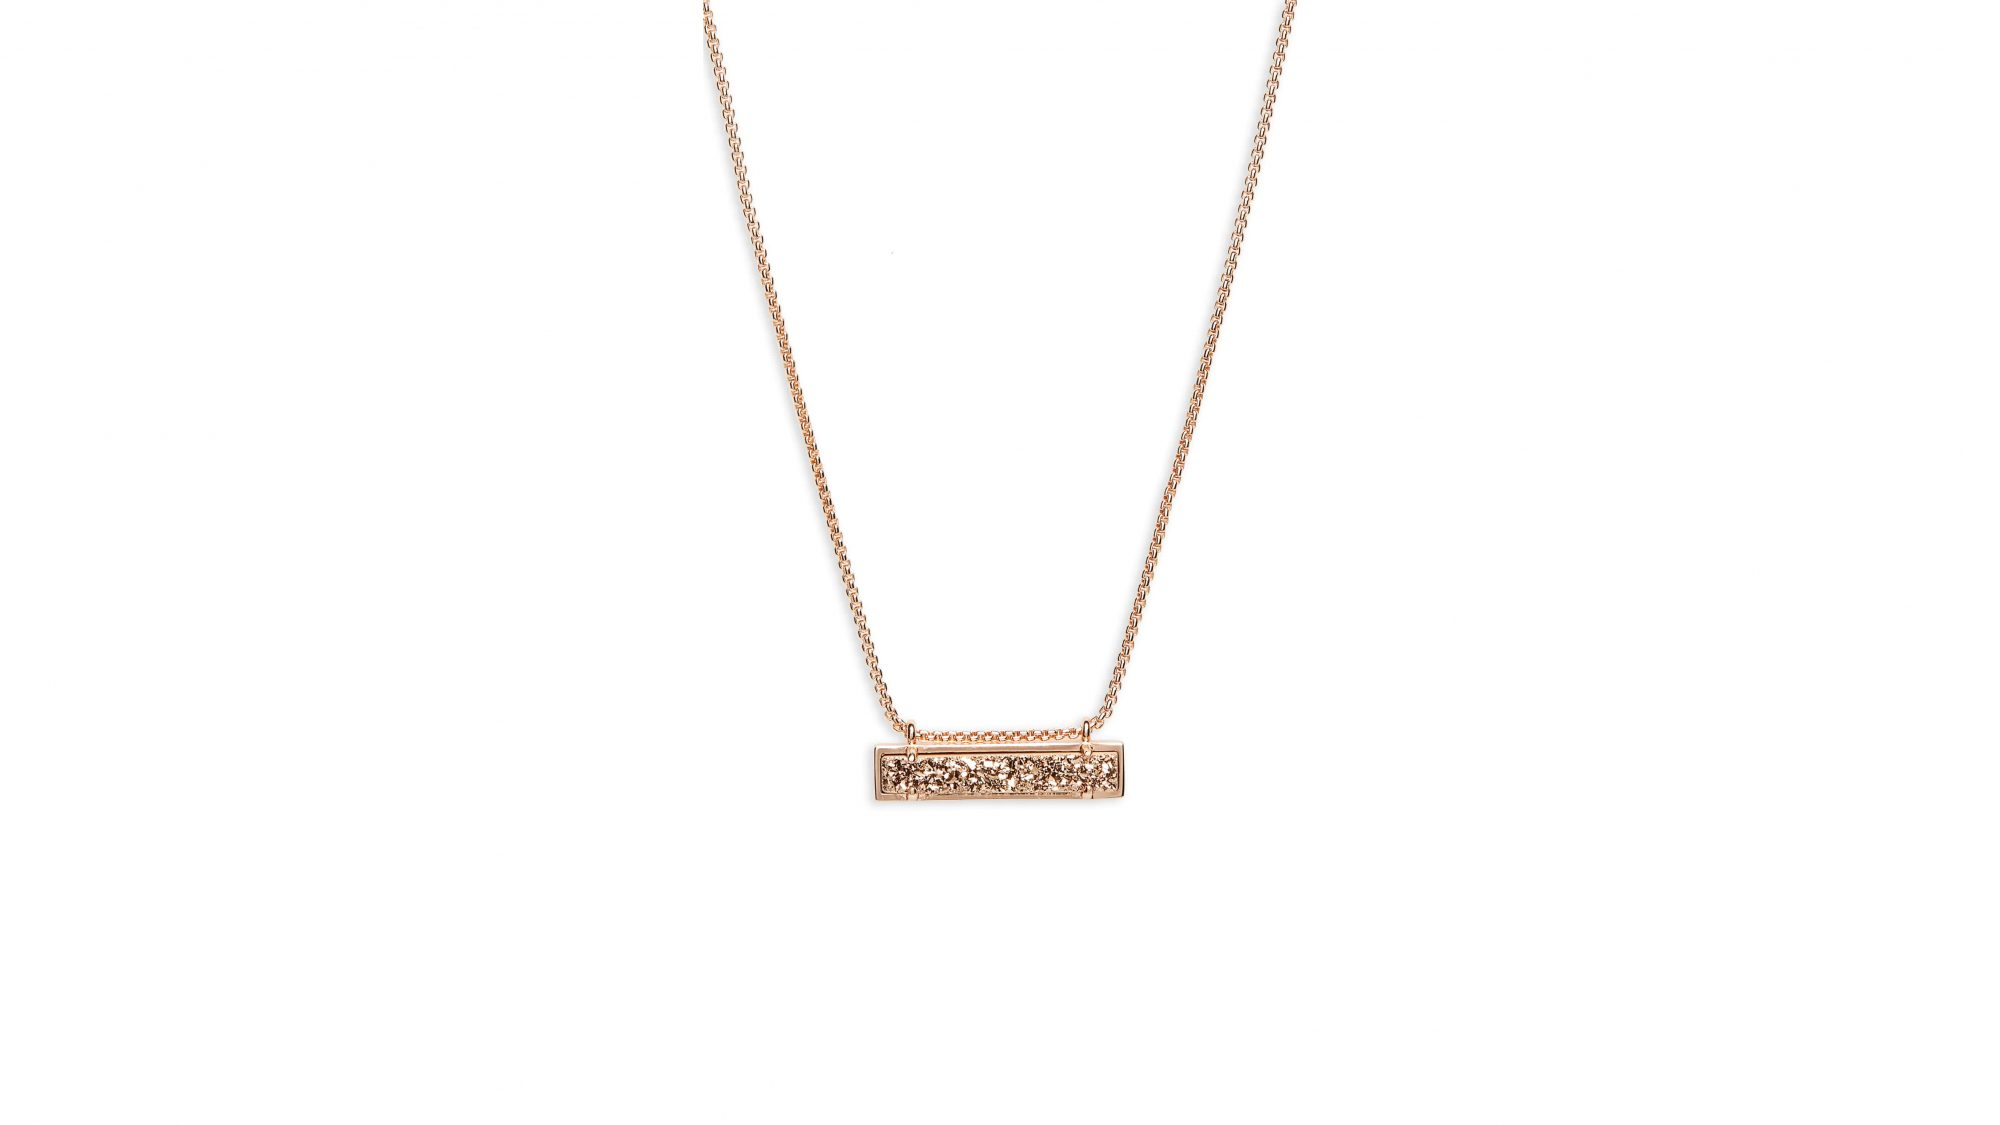 Valentines Day Ideas for Her: Personalized Pendant